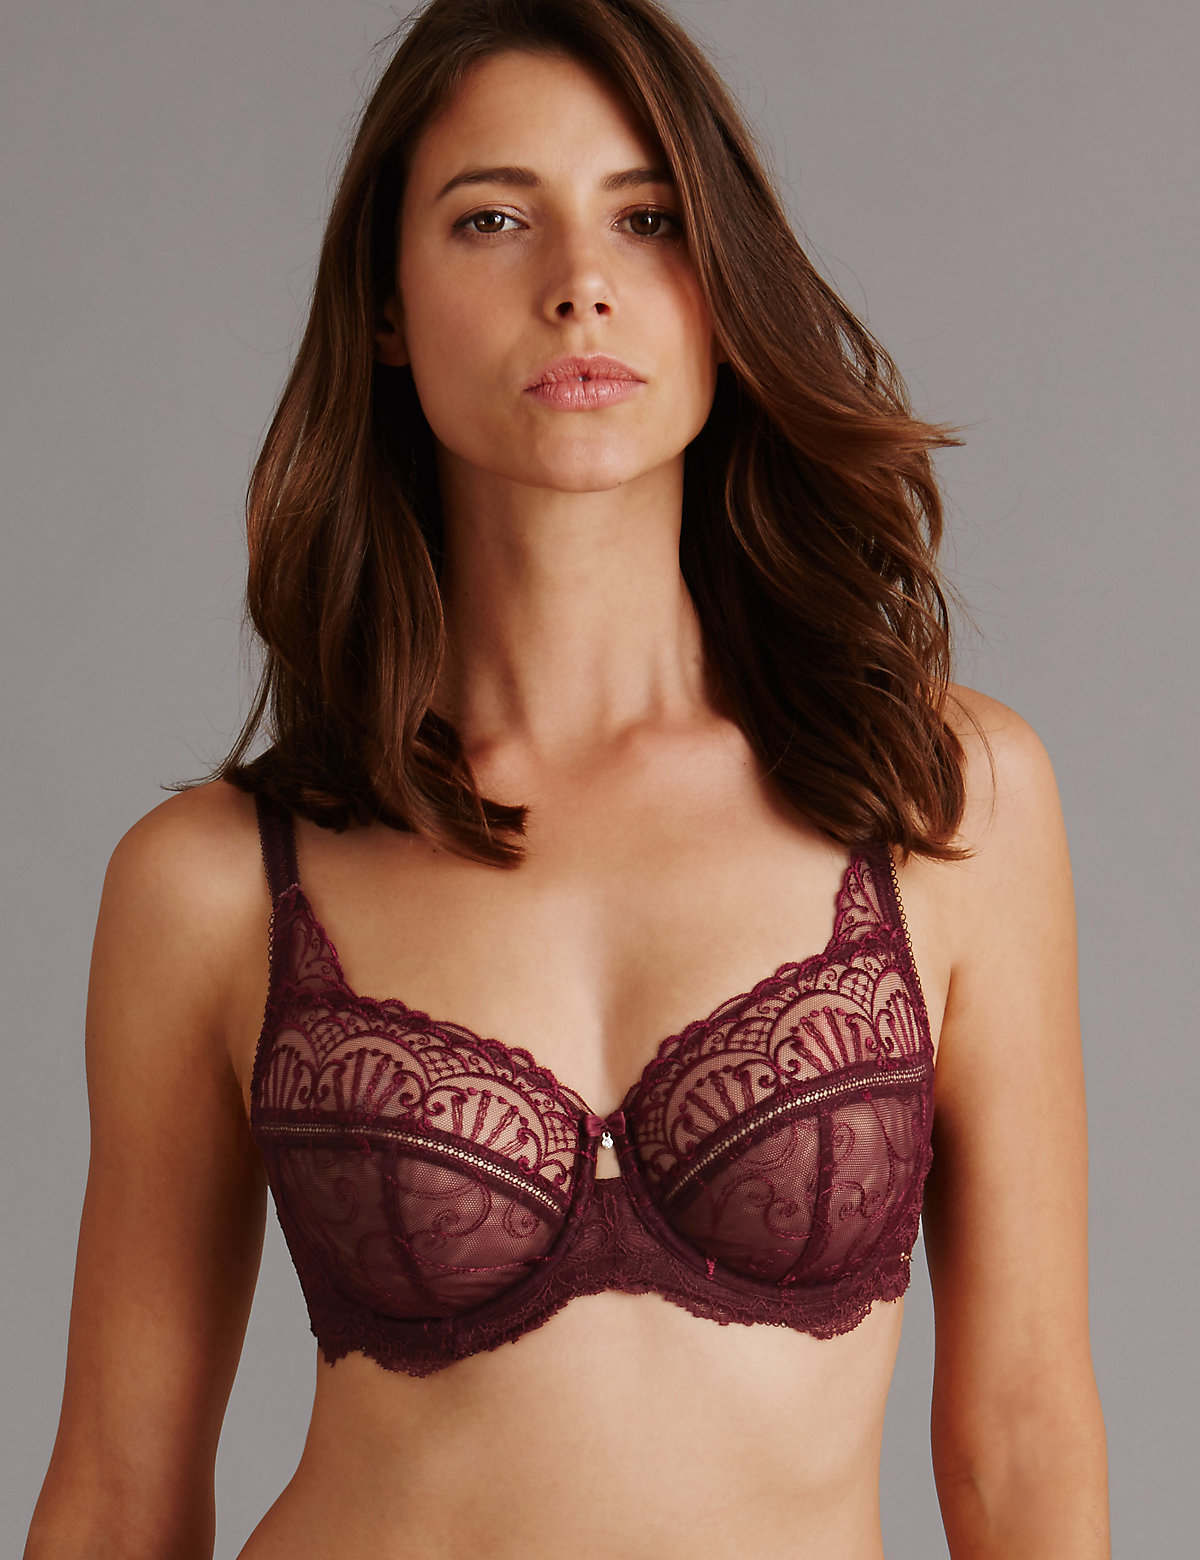 Autograph Ornamental Embroidery Non Padded Underwired Balcony Bra Dd-g